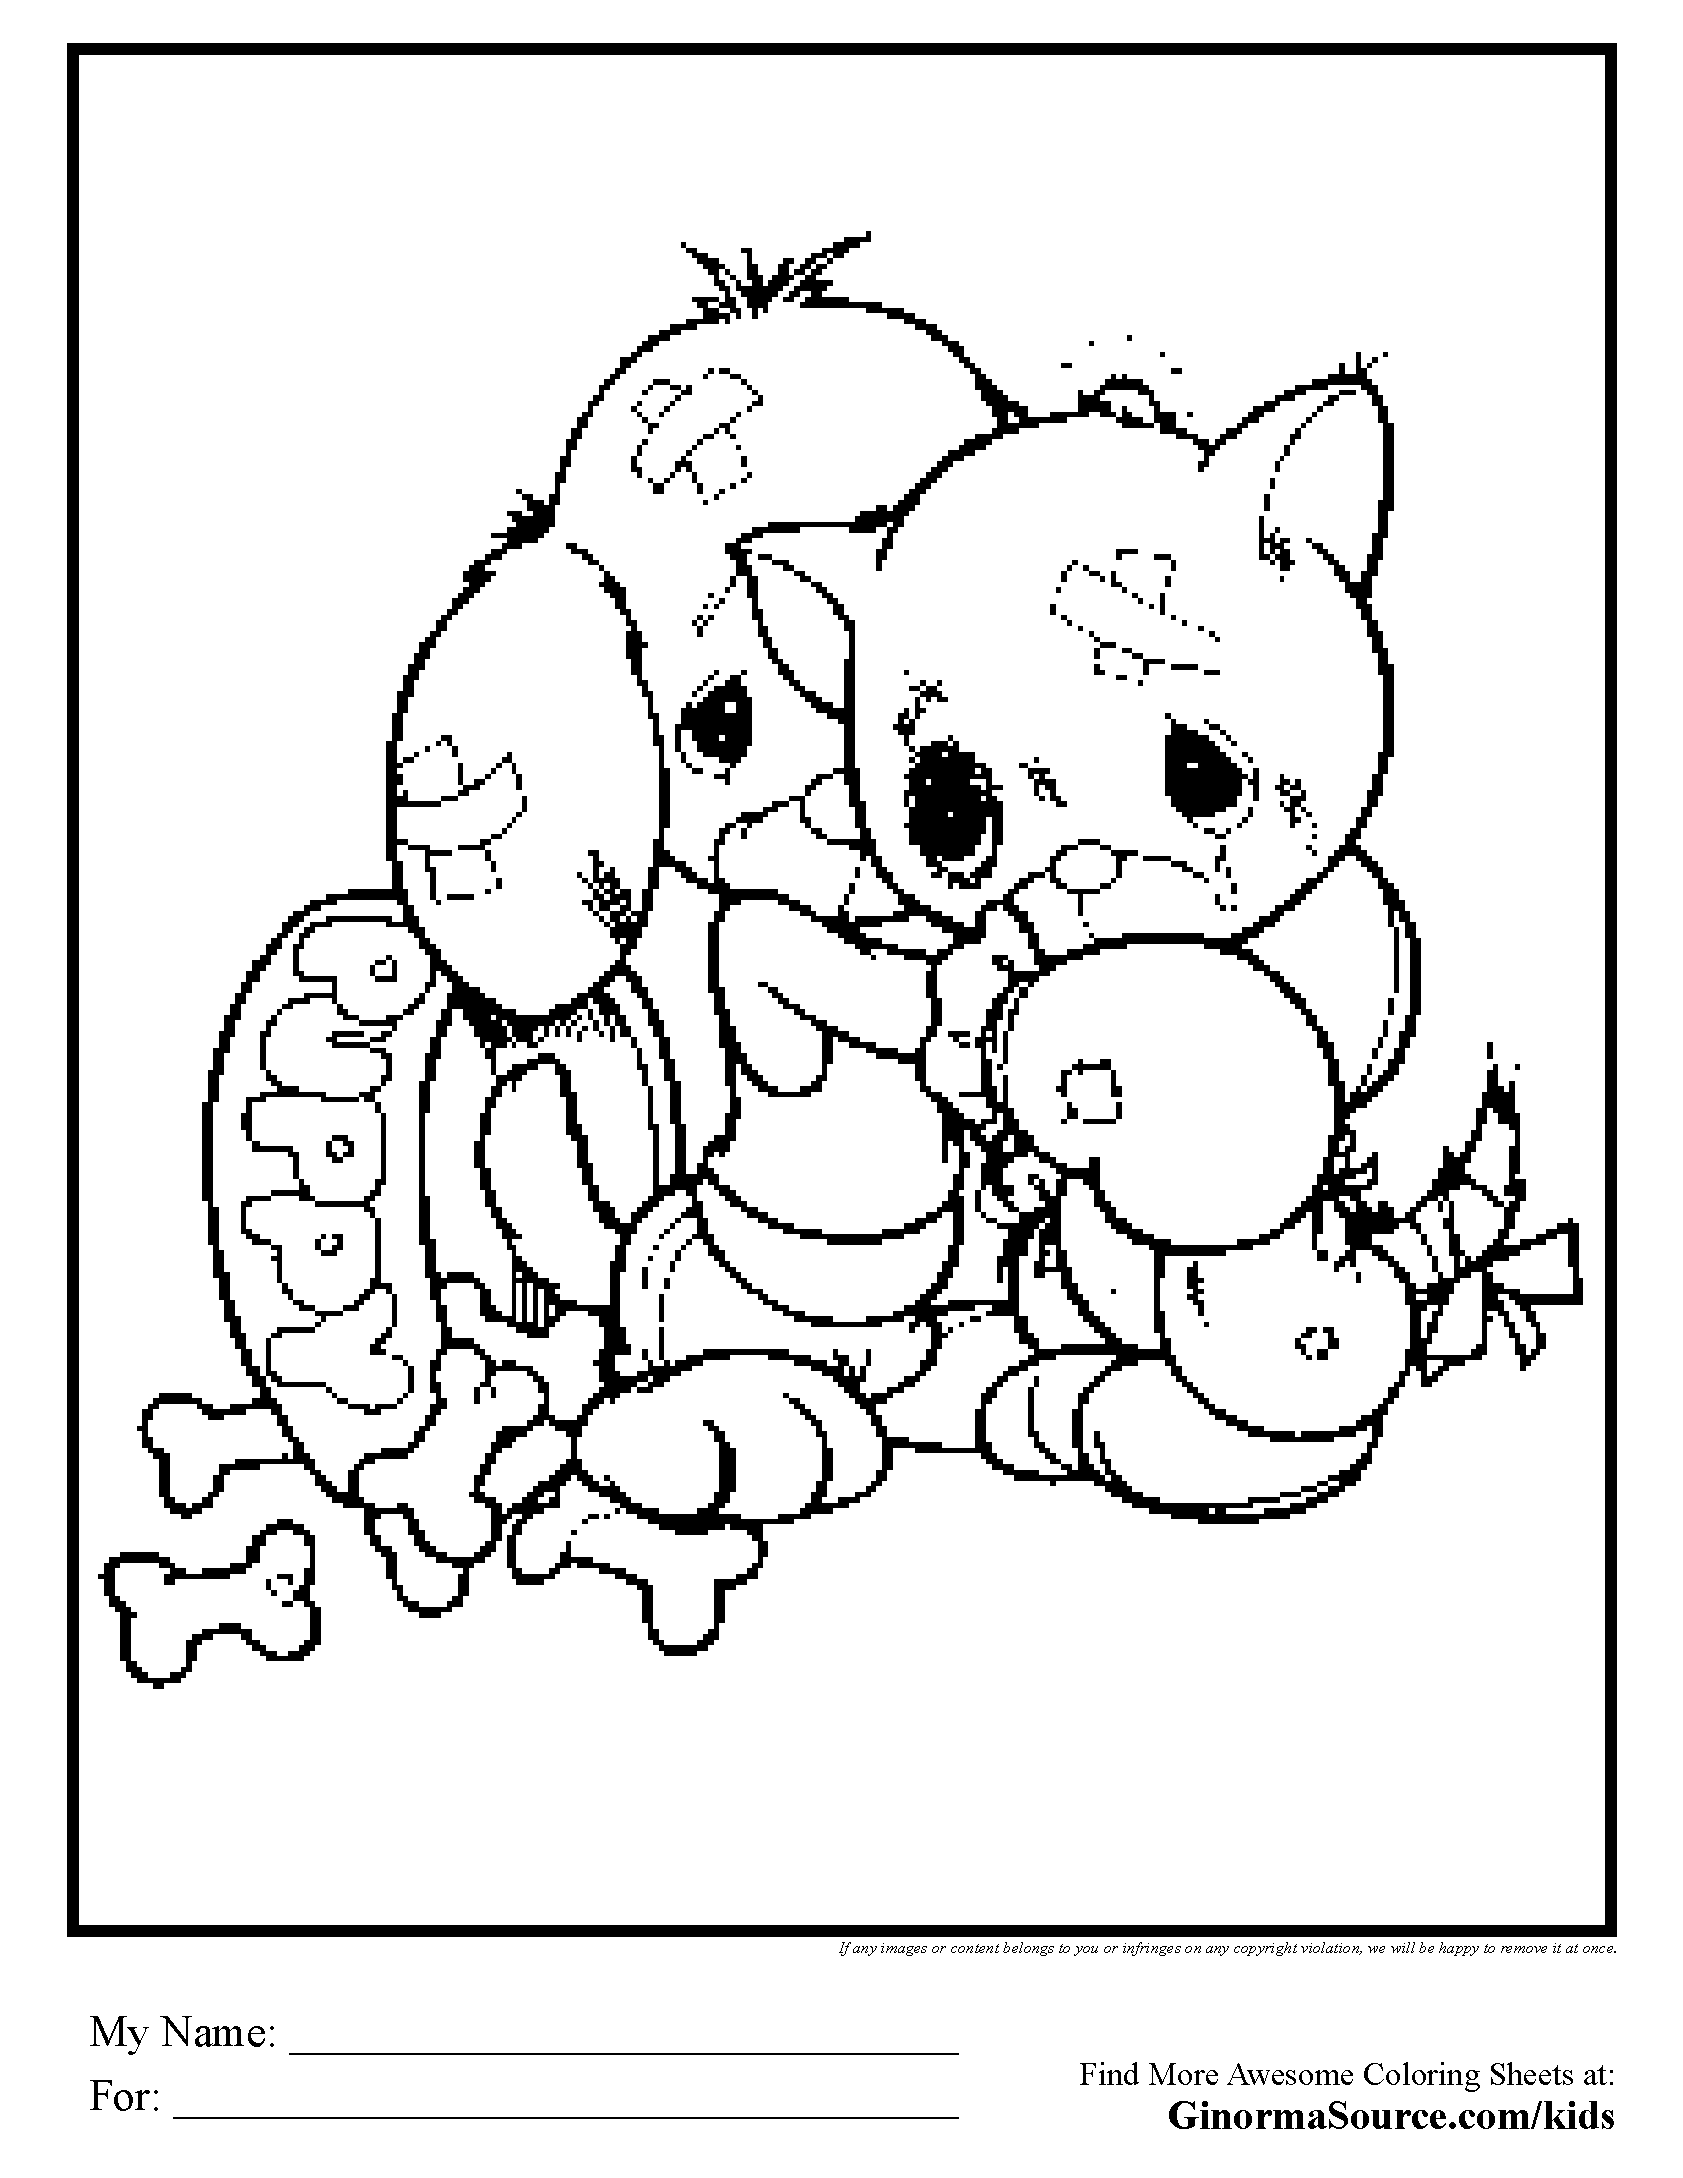 Advanced Dog Coloring Pages : Adorable kittens coloring pages az